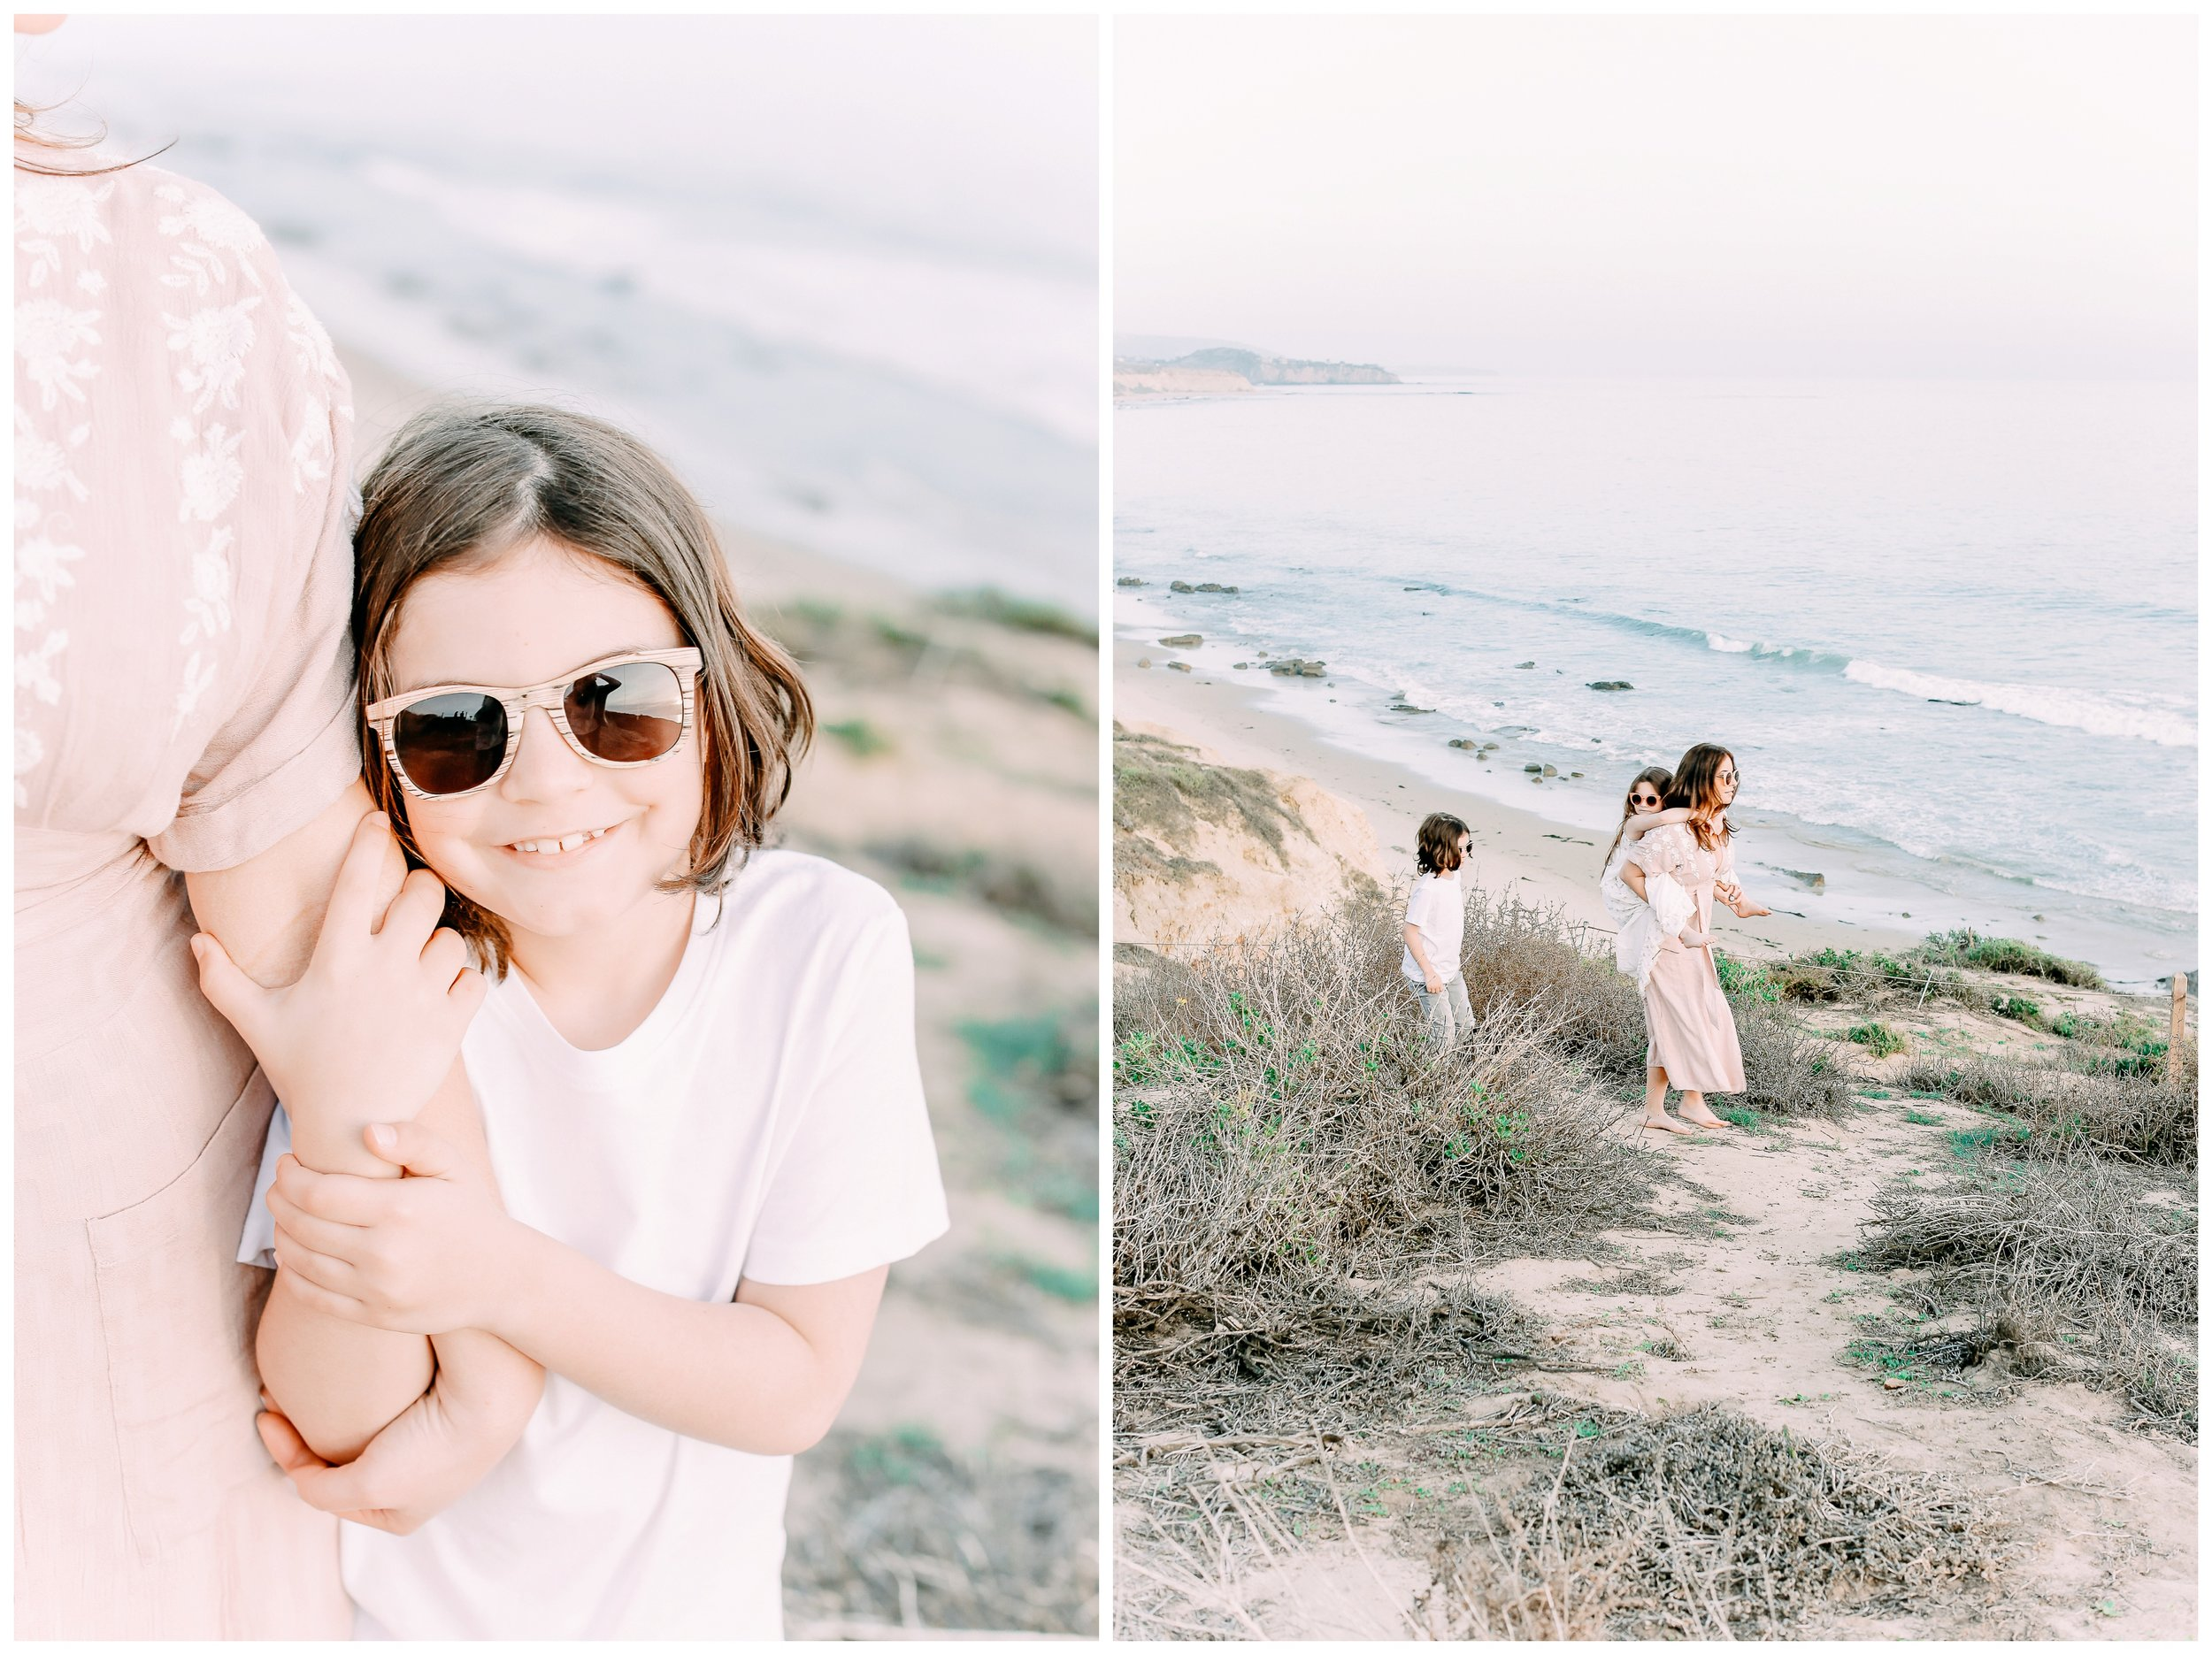 Crystal-Cove-State-Beach-Motherhood- Session-Crystal-Cove-Newport-Beach-Family-Photographer-Crystal-Cove-Minnow-Swim-Cori-Kleckner-Photography-Orange-County-Vacation-Family-Photos-Session-_0856.jpg